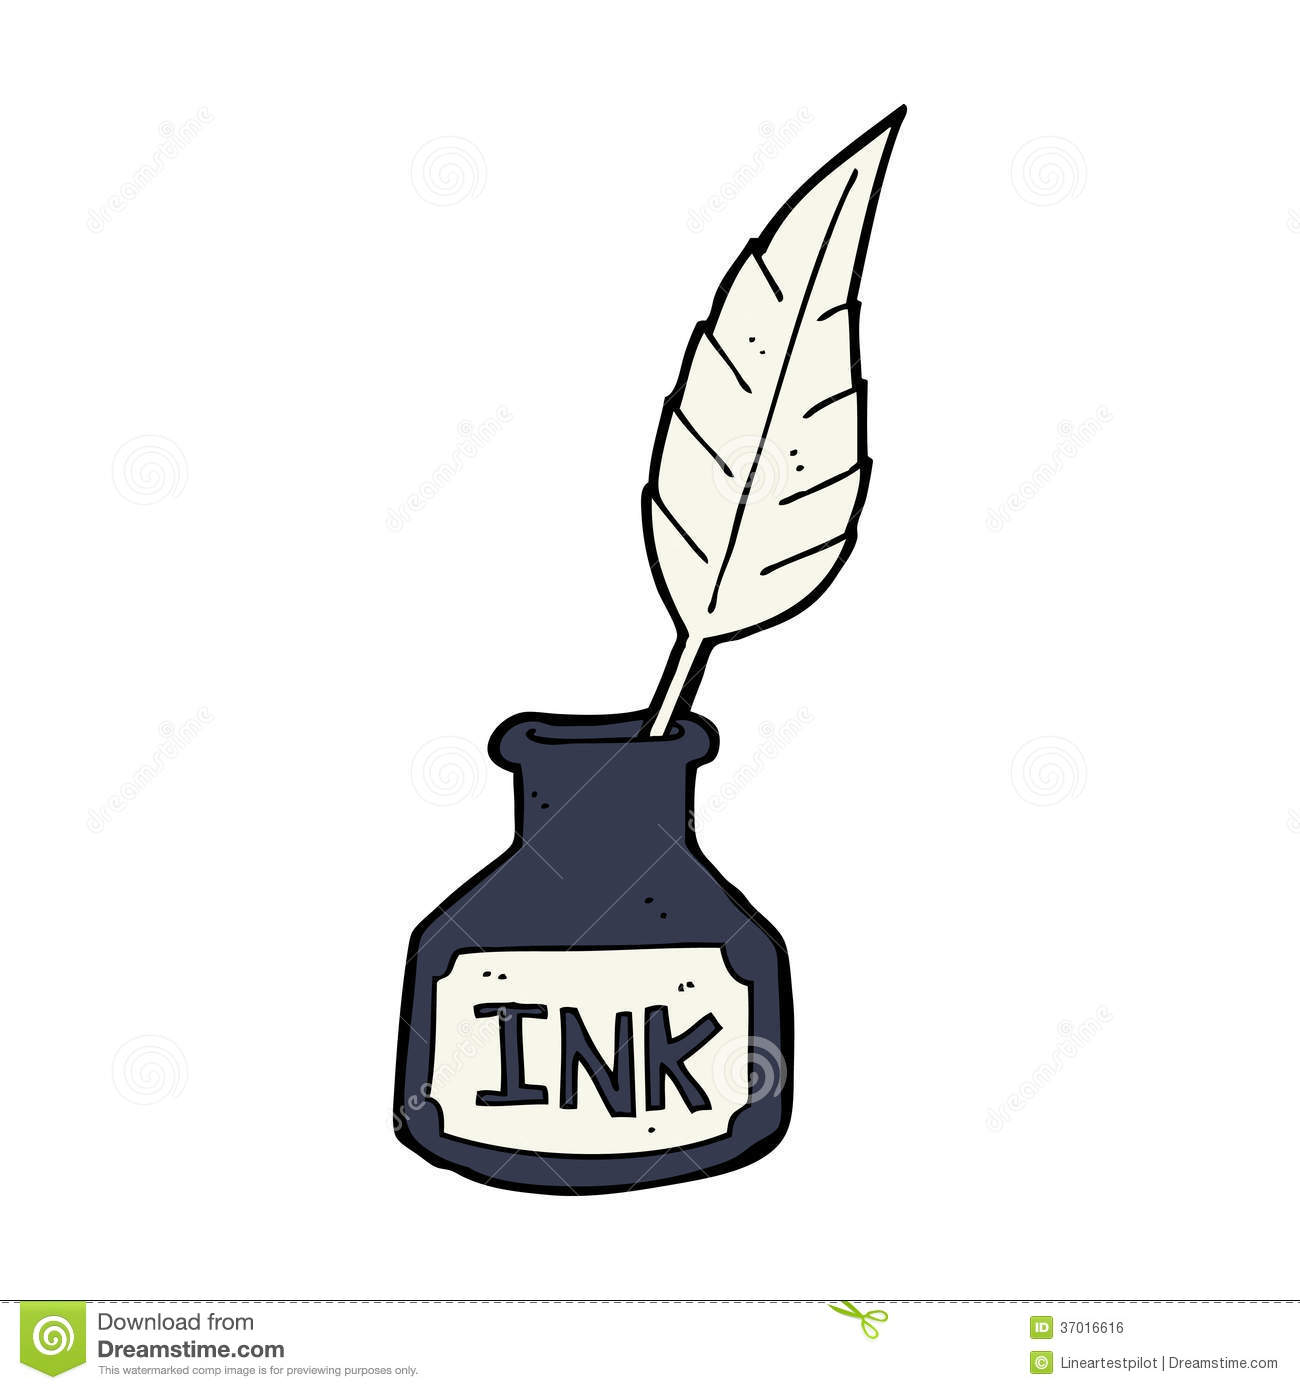 Ink Clipart.